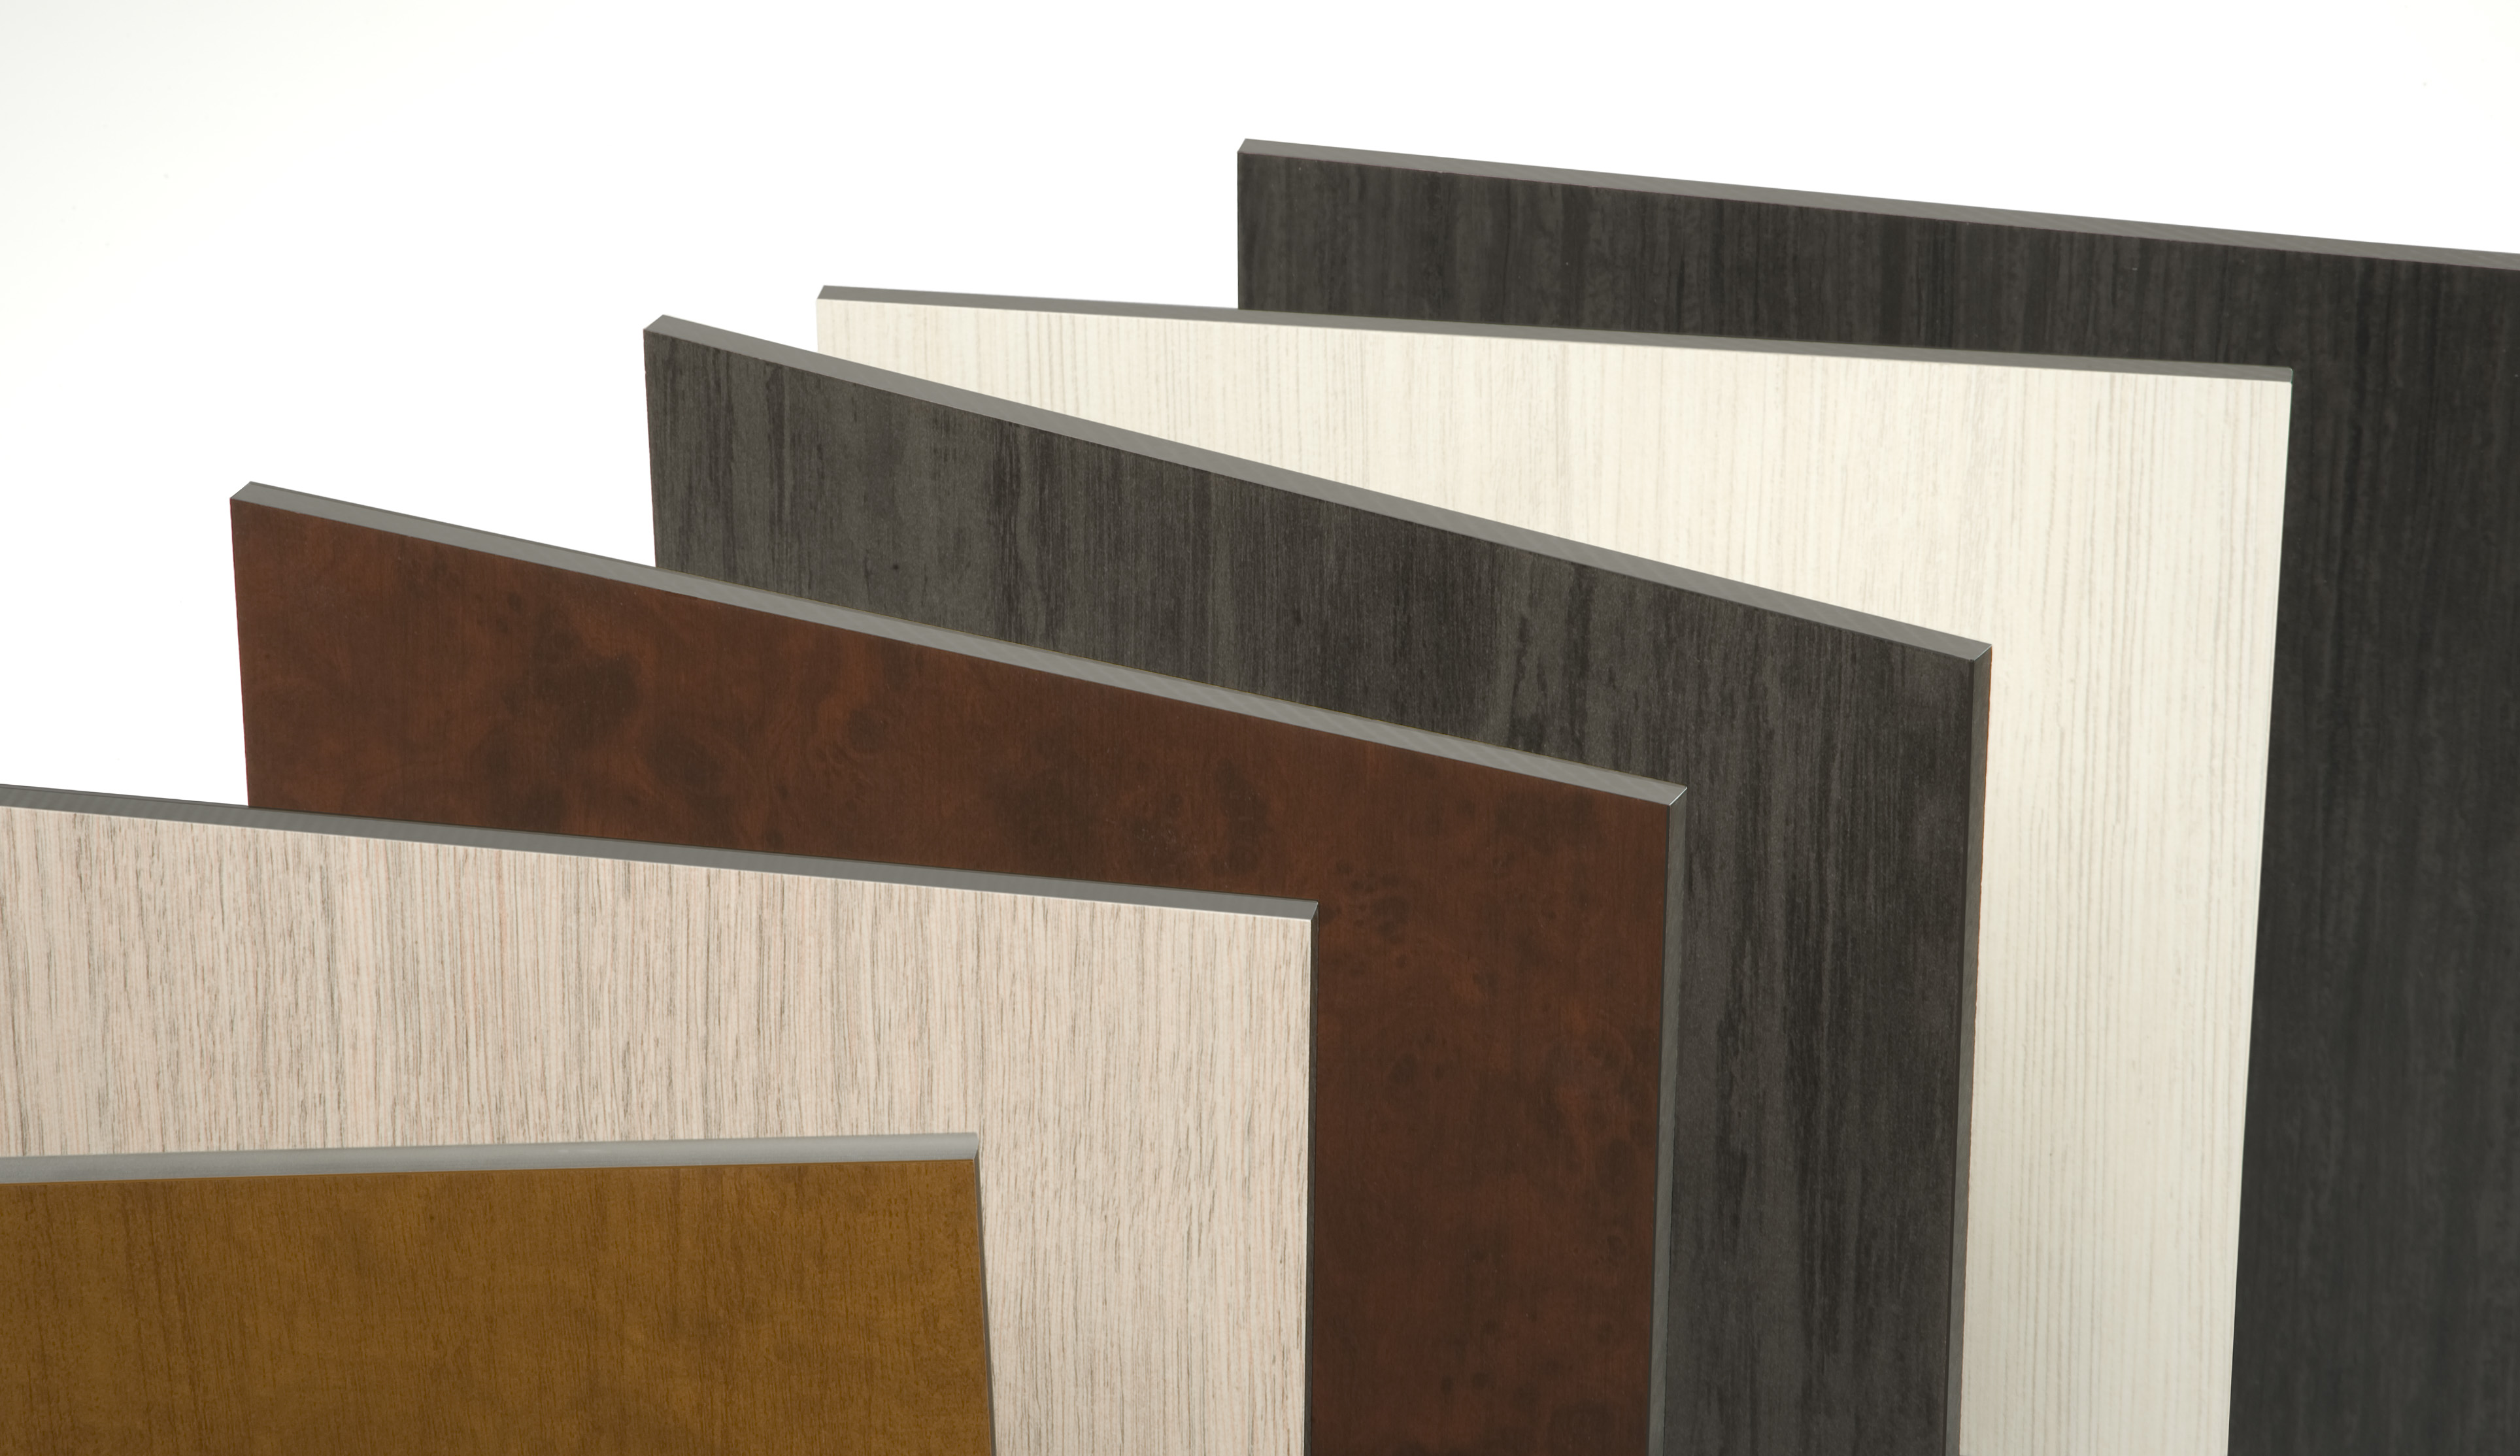 Trespa Meteon Architectural Panels Add New Matt Finish